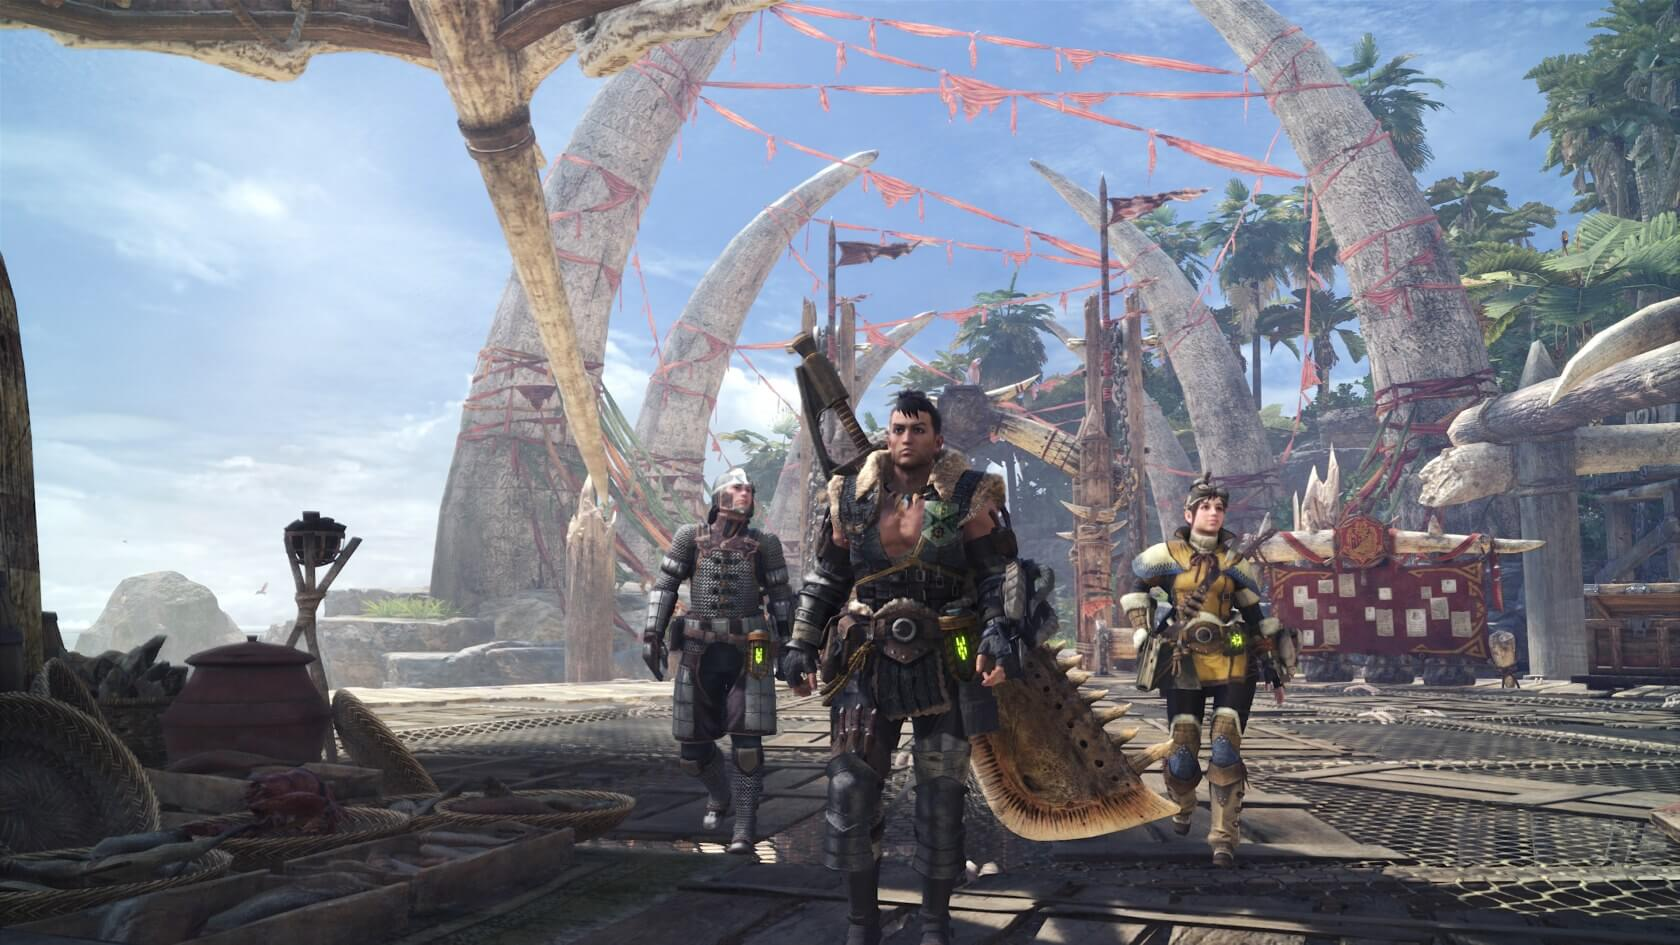 Nvidia claims a 50 percent framerate uplift in Monster Hunter: World with DLSS